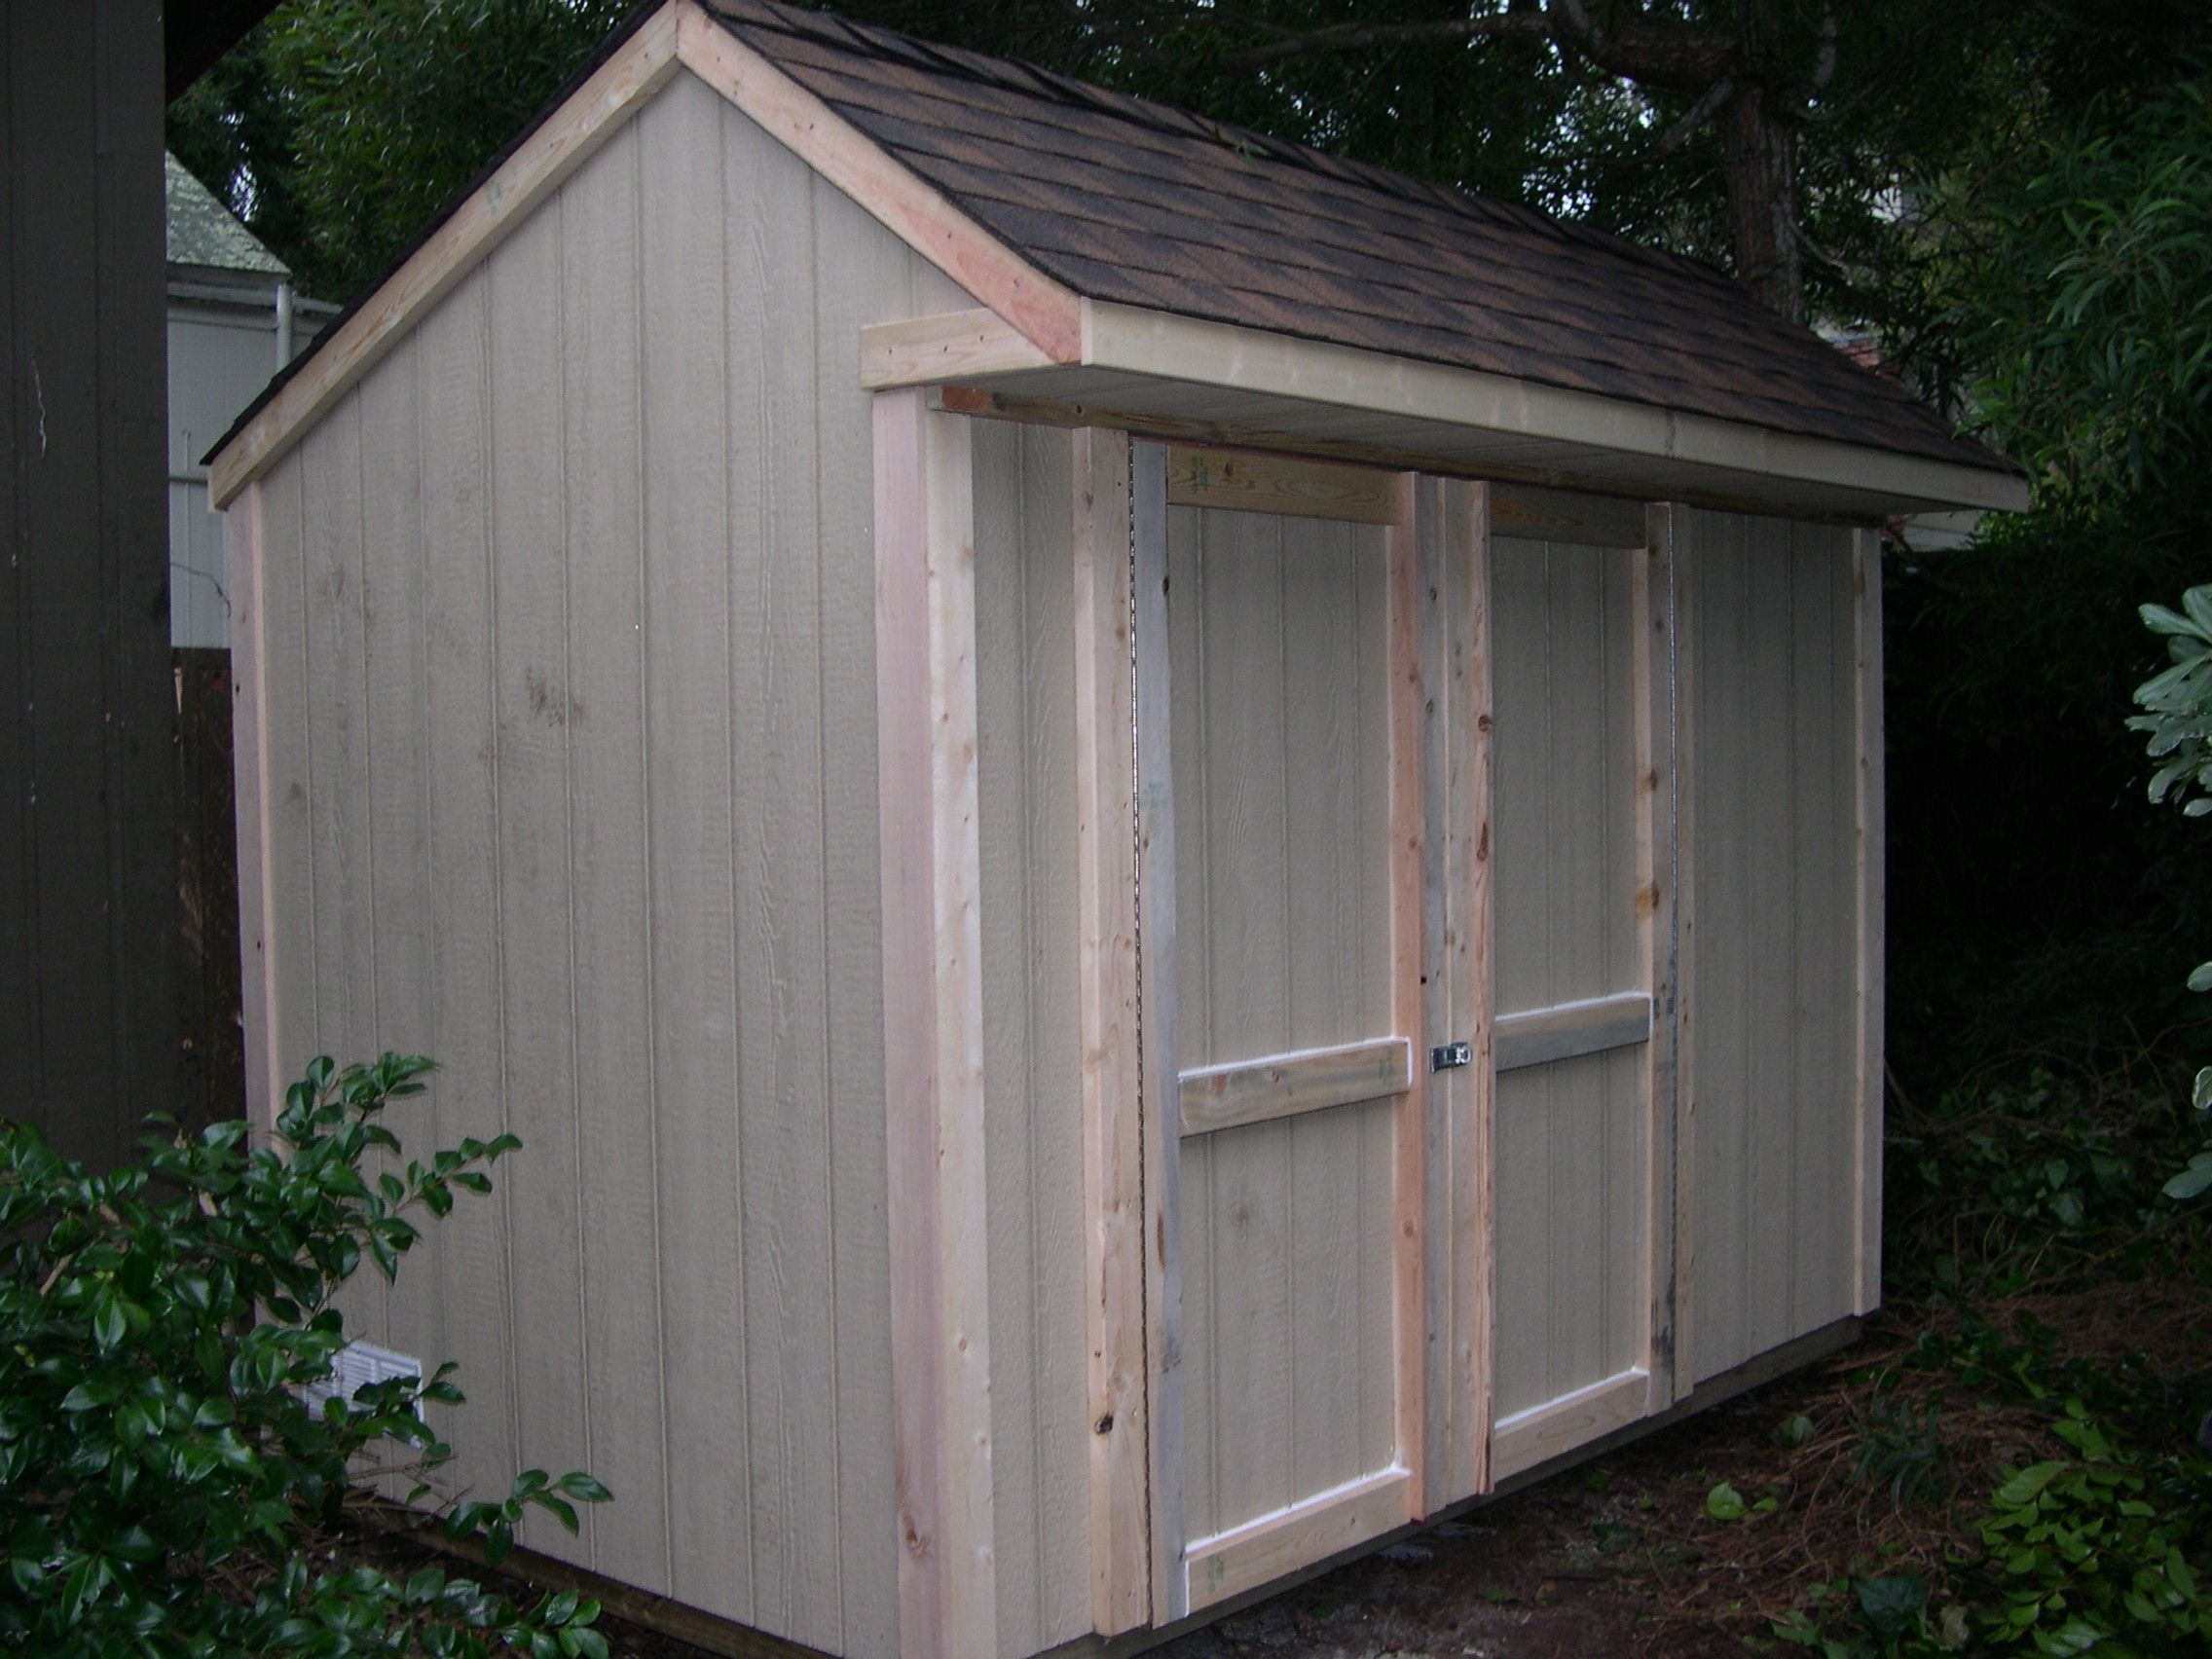 Merveilleux SAMPLE Shed Plans 22, 6x10 Saltbox Roof, Small Shed, DOWNLOAD